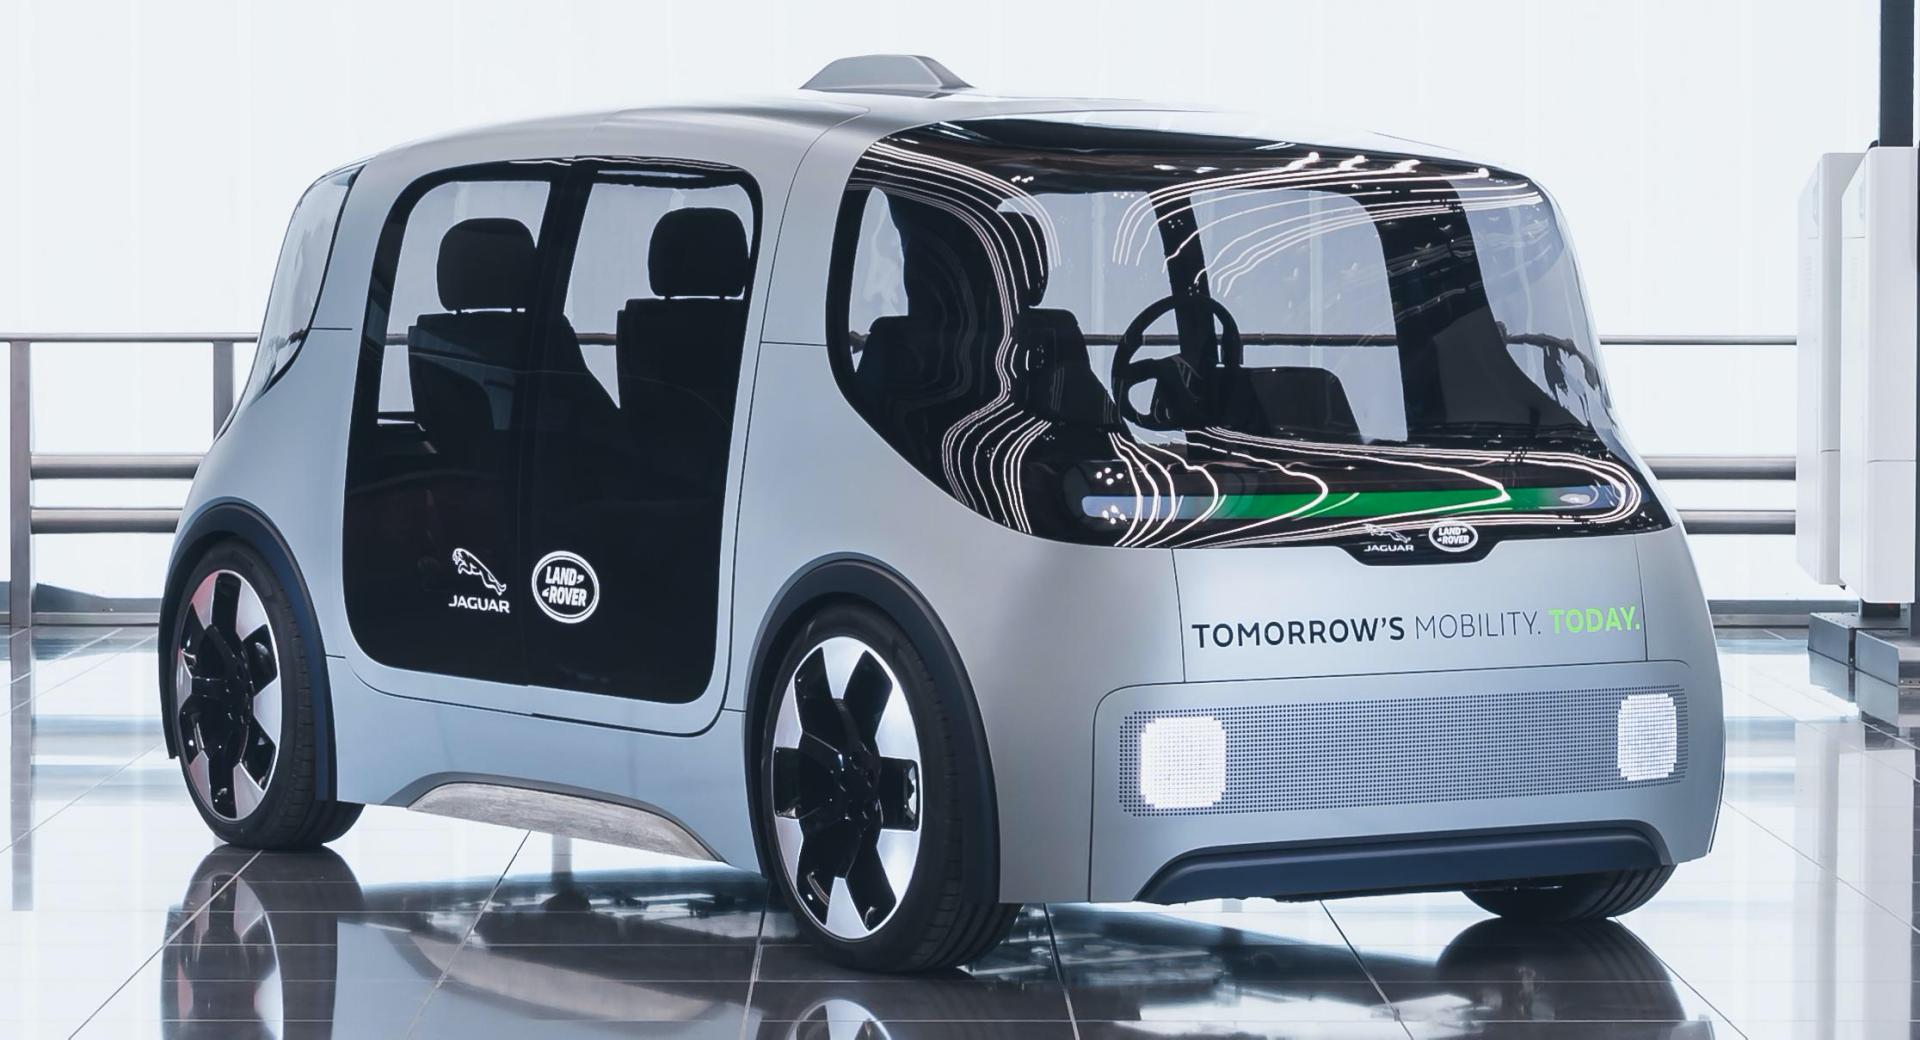 Jaguar Land Rover has teamed up with the NAIC engineering team of Warwick University to design the Project Vector, a single-space, self-driving EV meant for taxi, delivery and ride sharing applications.